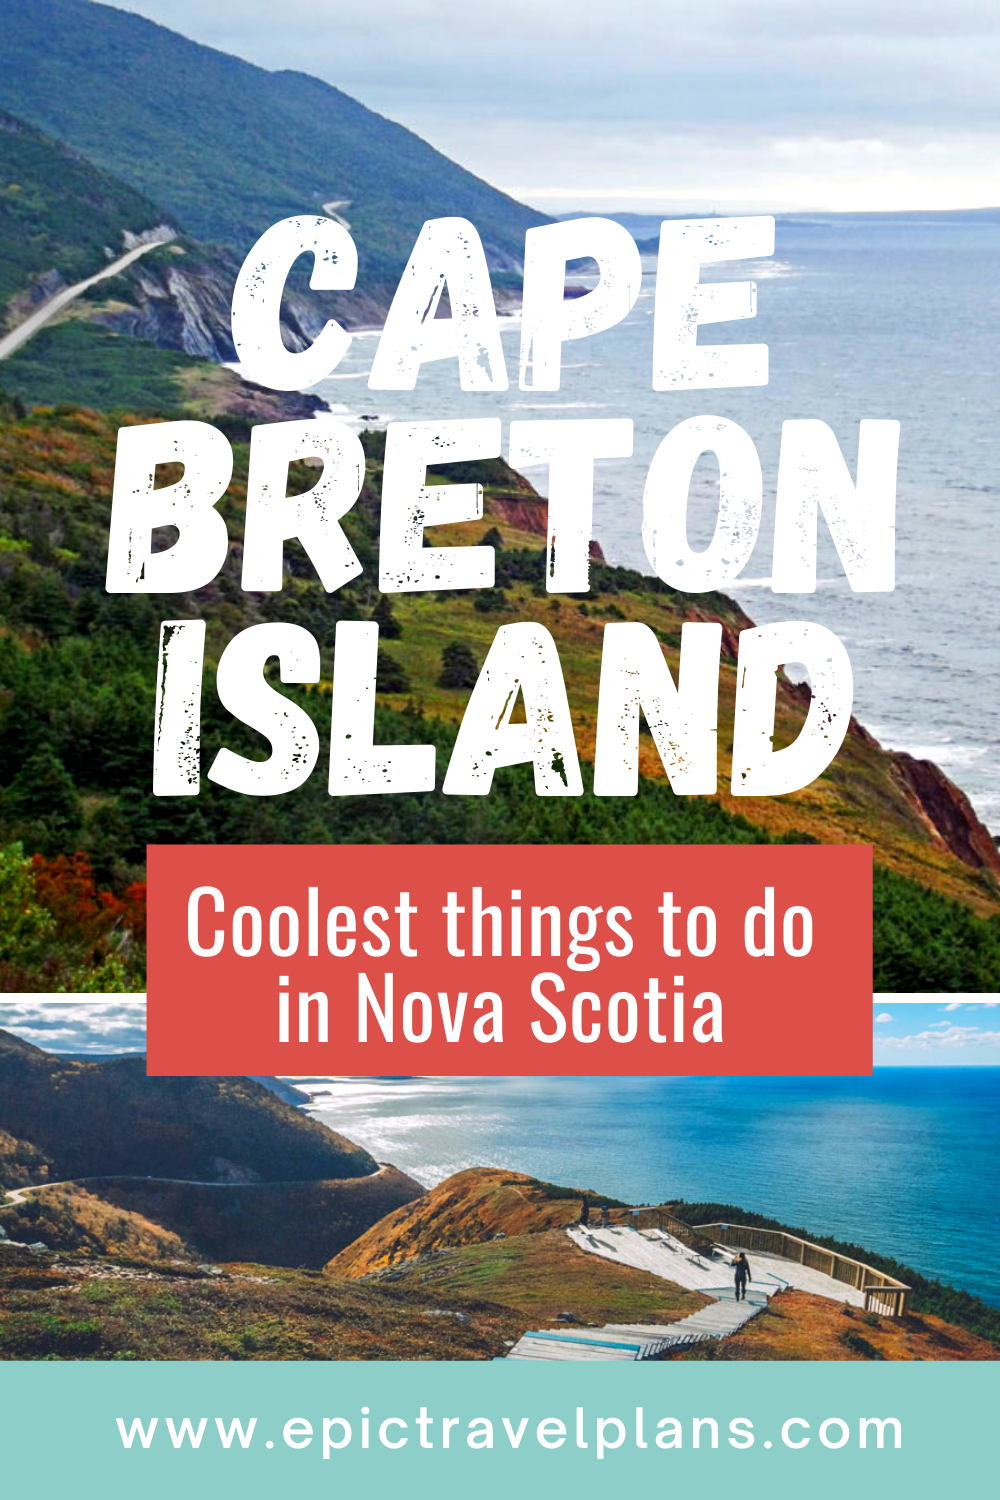 Coolest things to do in Nova Scotia, Cape Breton Island